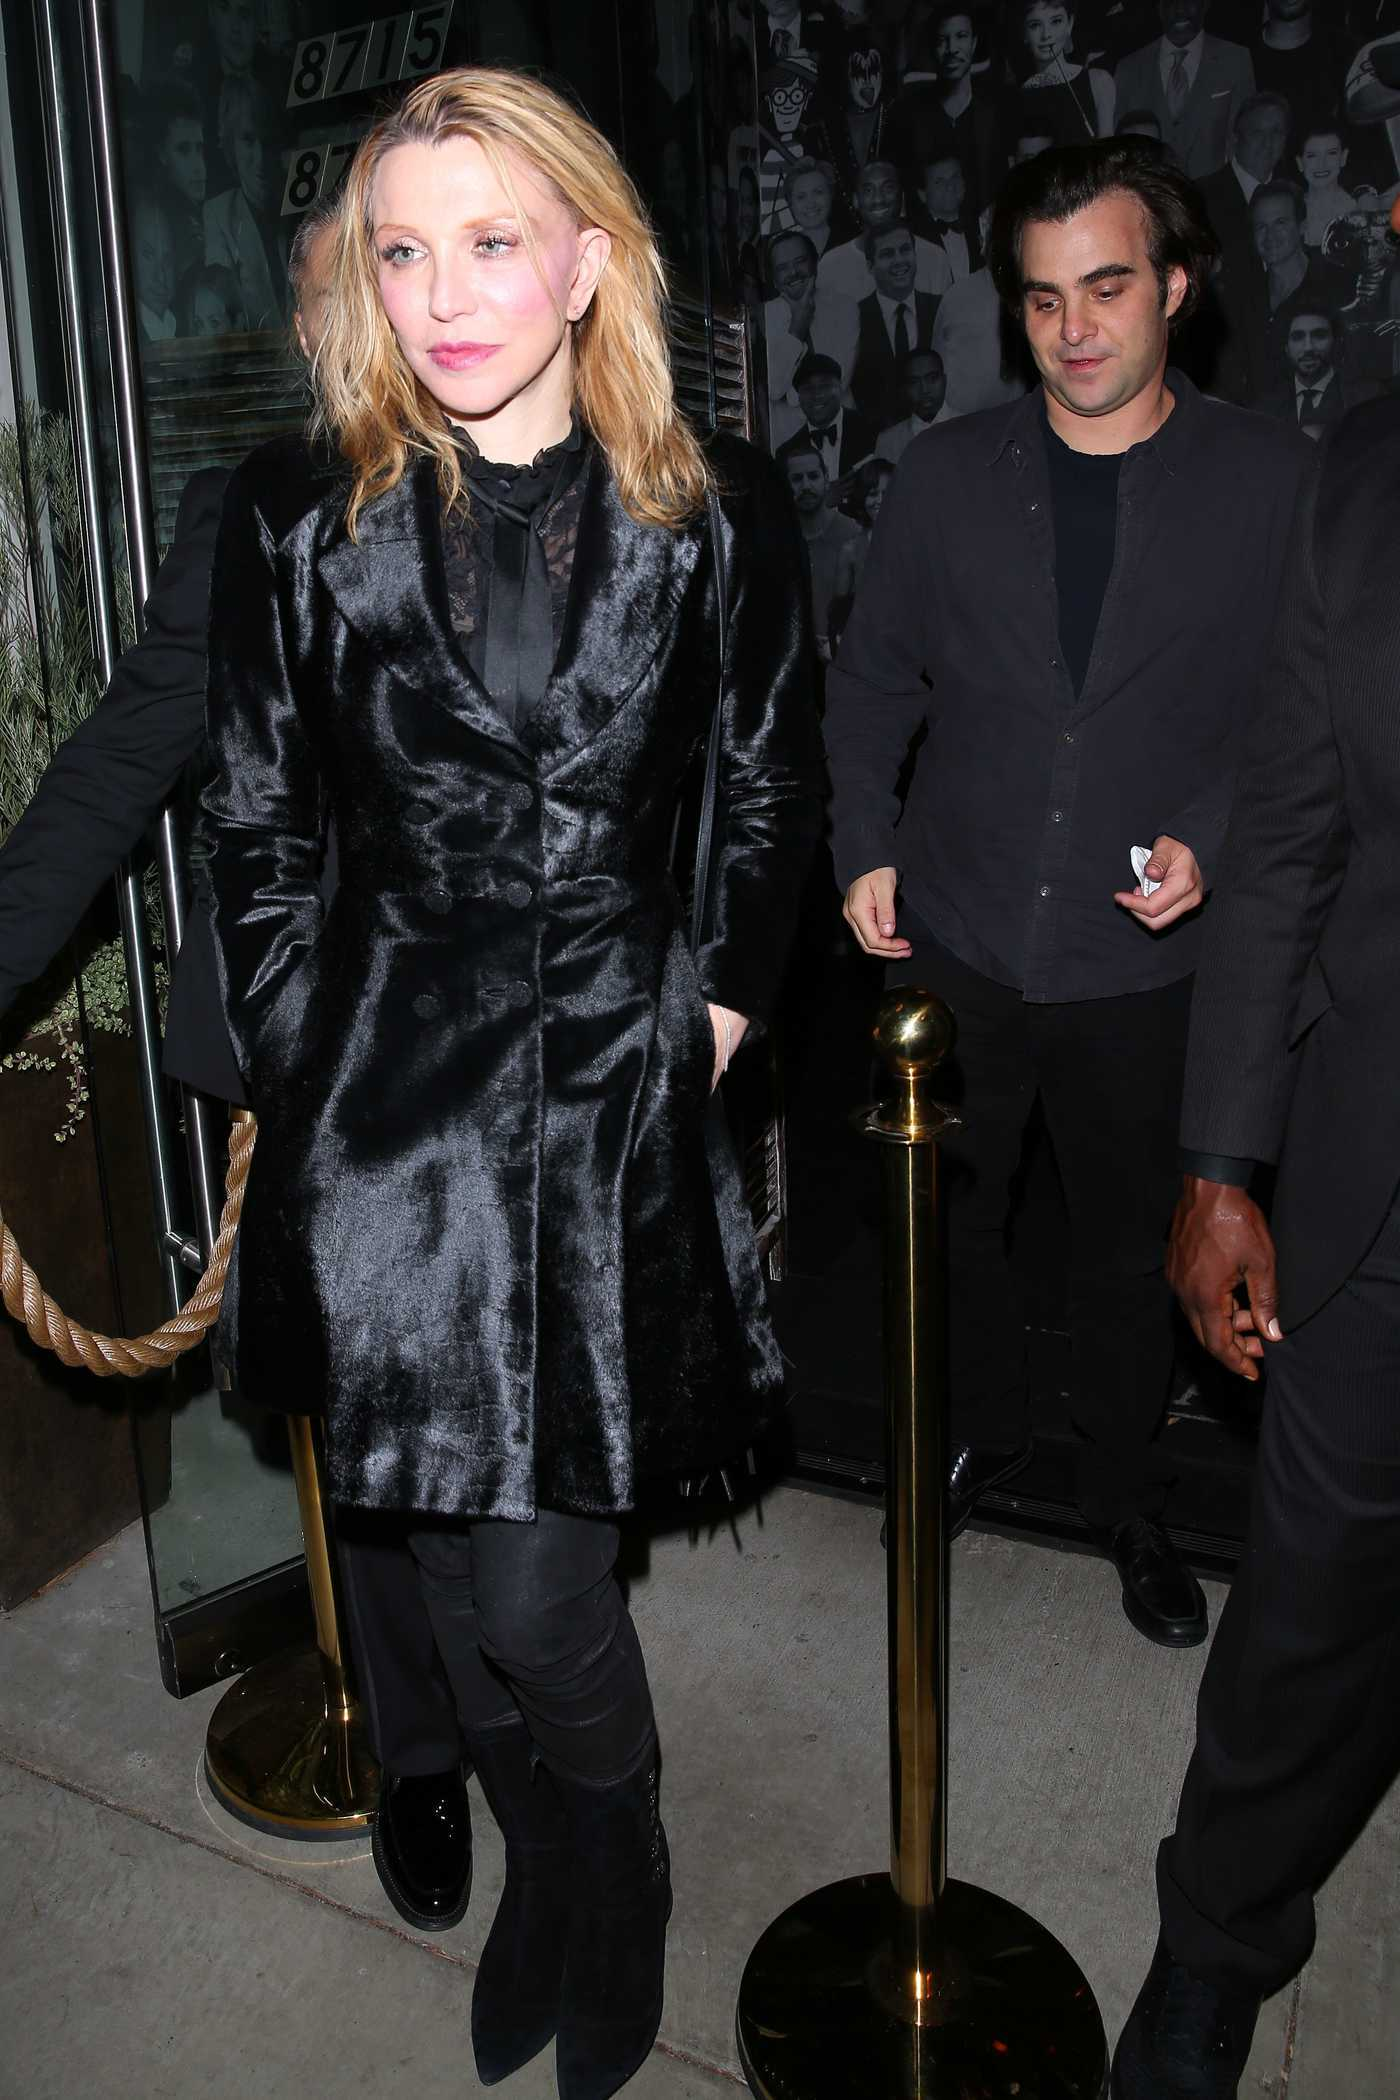 Courtney Love Leaves the Catch Restaurant in West Hollywood 10/21/2016